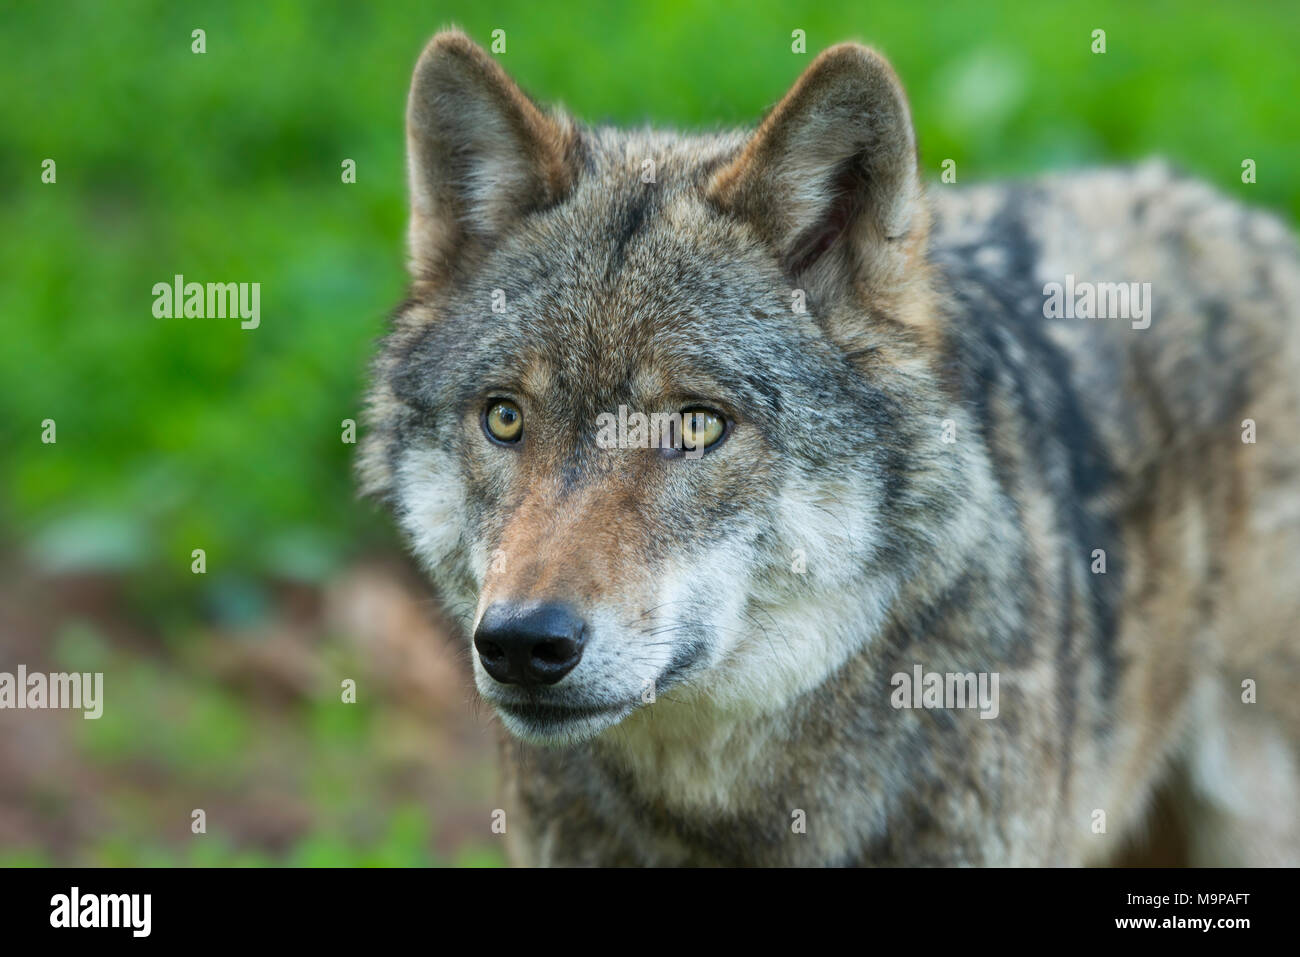 Lobo gris (Canis lupus), retrato animal, cautiva, Alemania Imagen De Stock